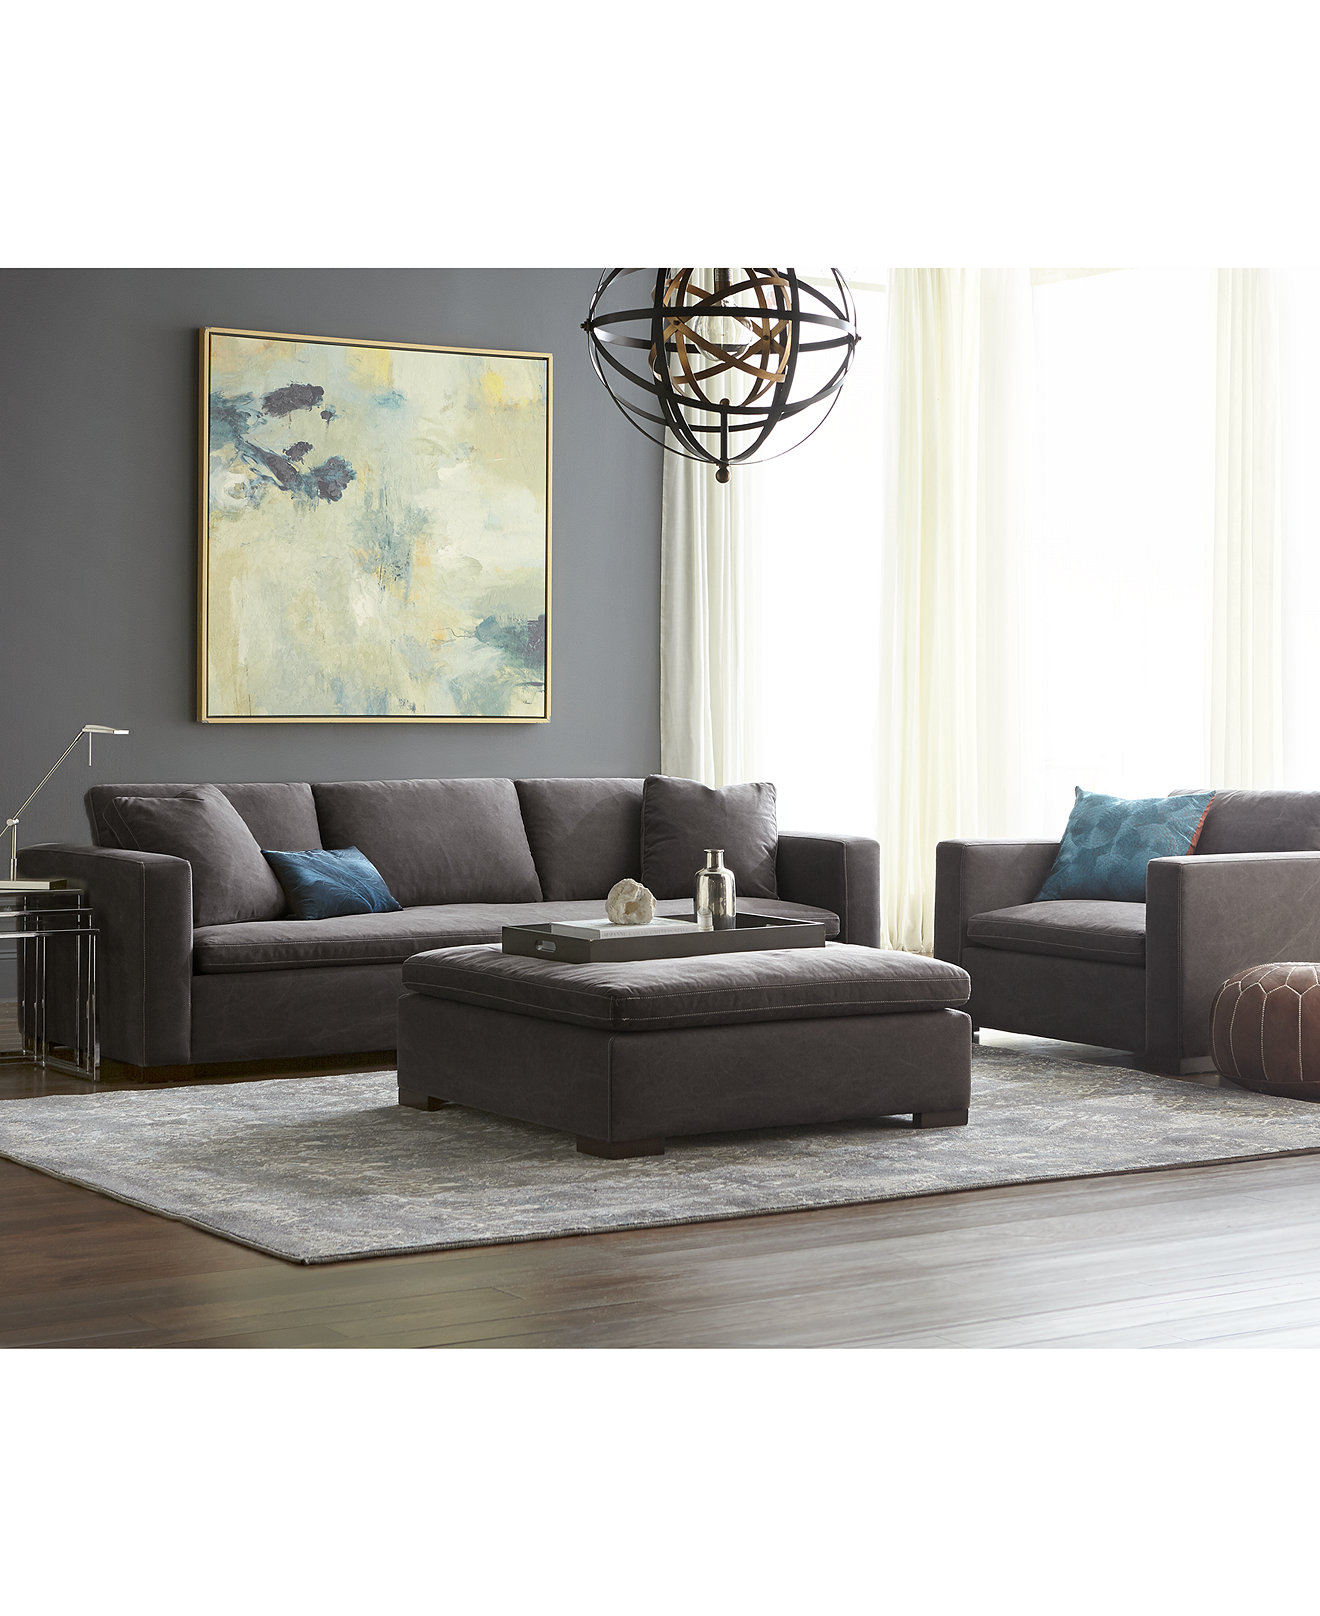 Cirillo fabric sofa collection only at macys